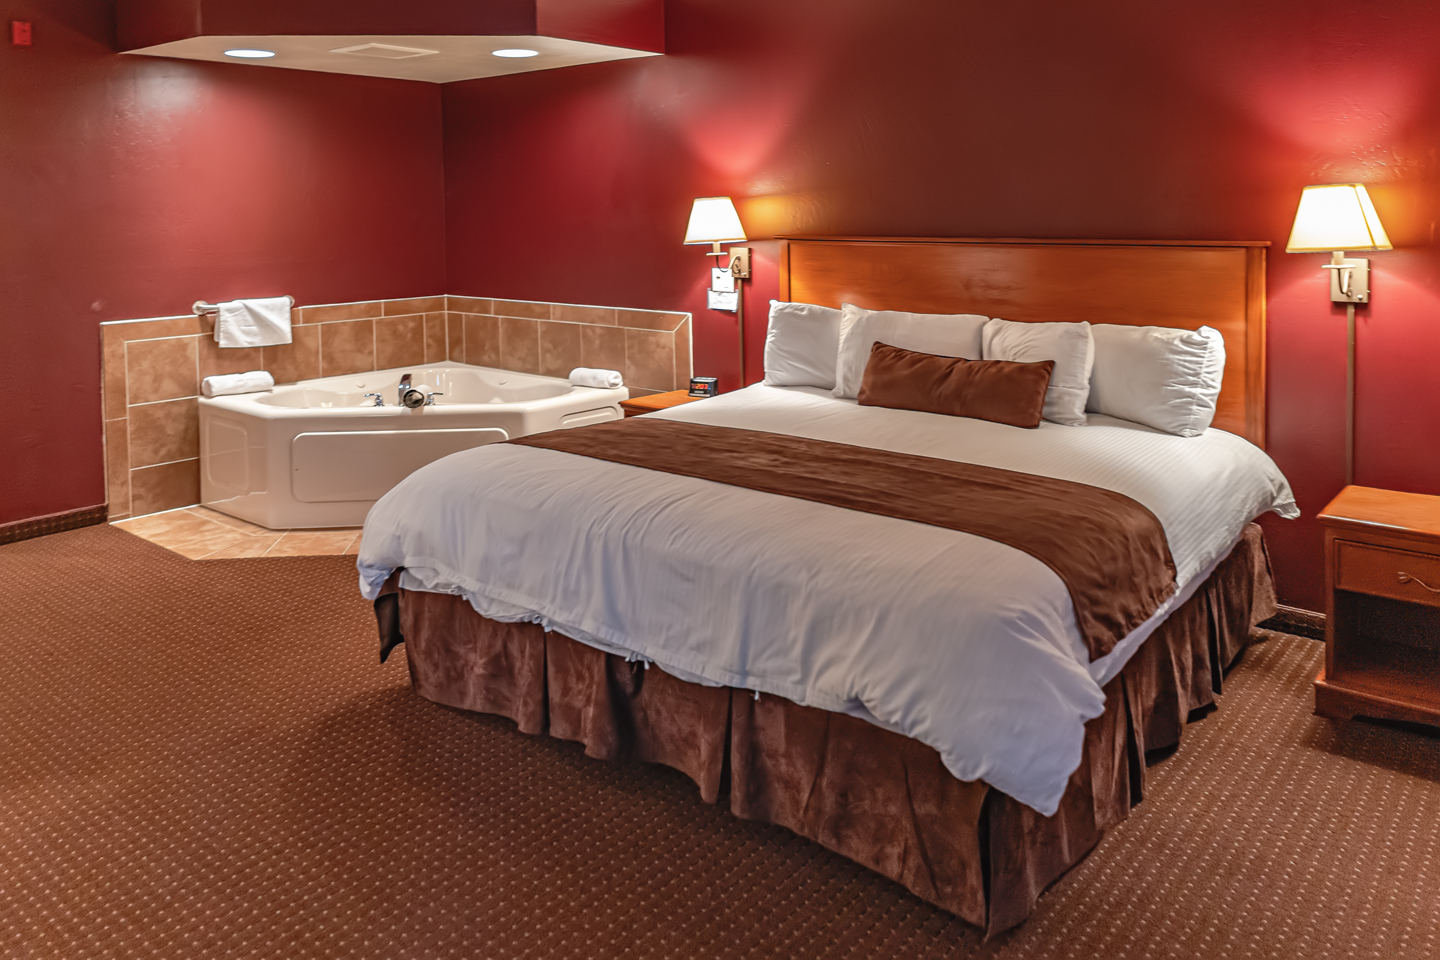 Mole Lake Casino Lodge In Crandon Wisconsin Offers The Best Hotel Deals On Whirlpool Suite Rooms